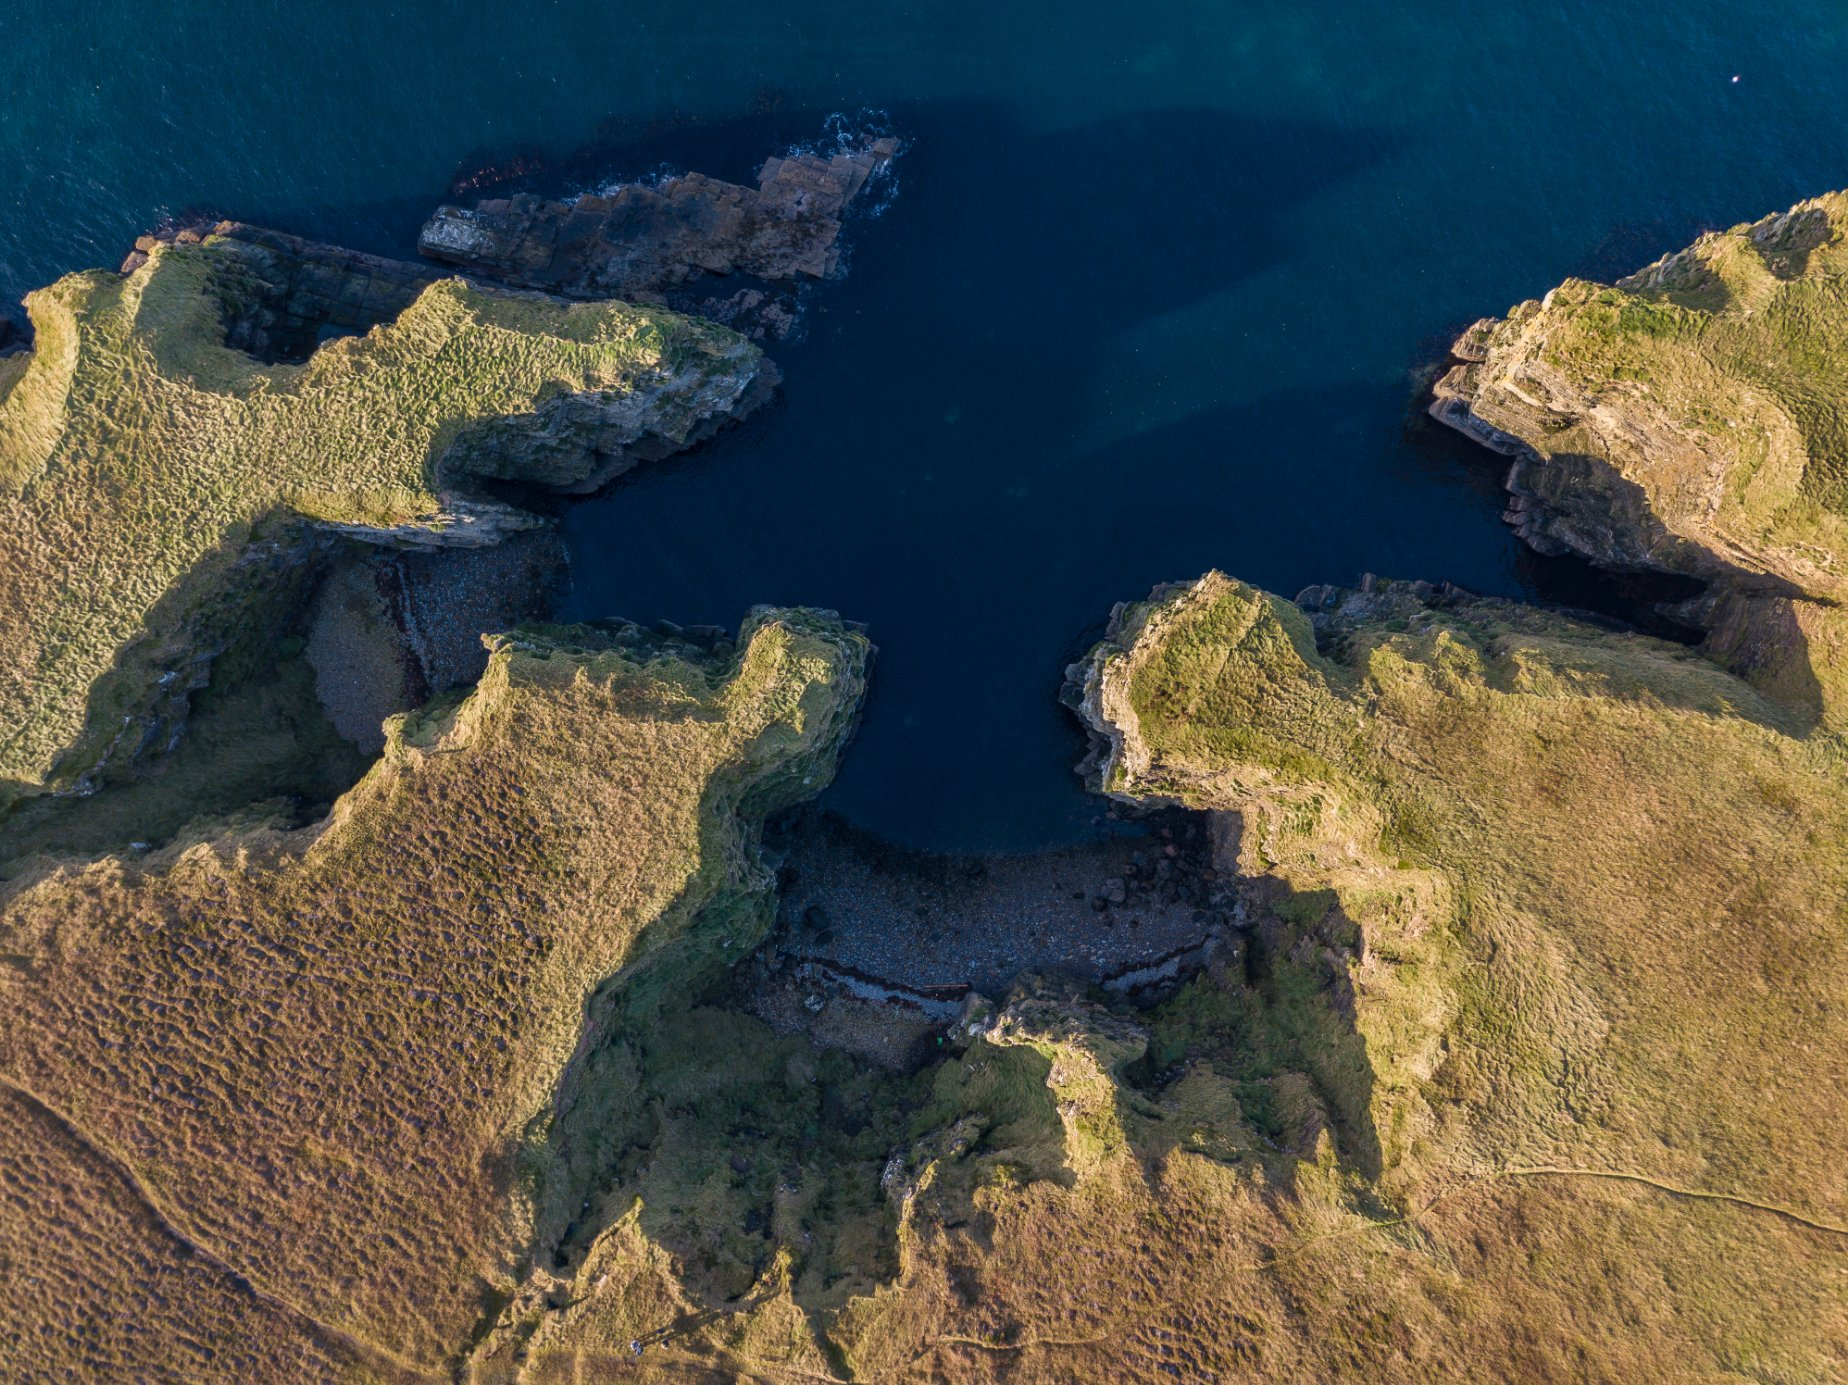 Craggy coastline in Deerness, Orkney - image by Akmal Hakim